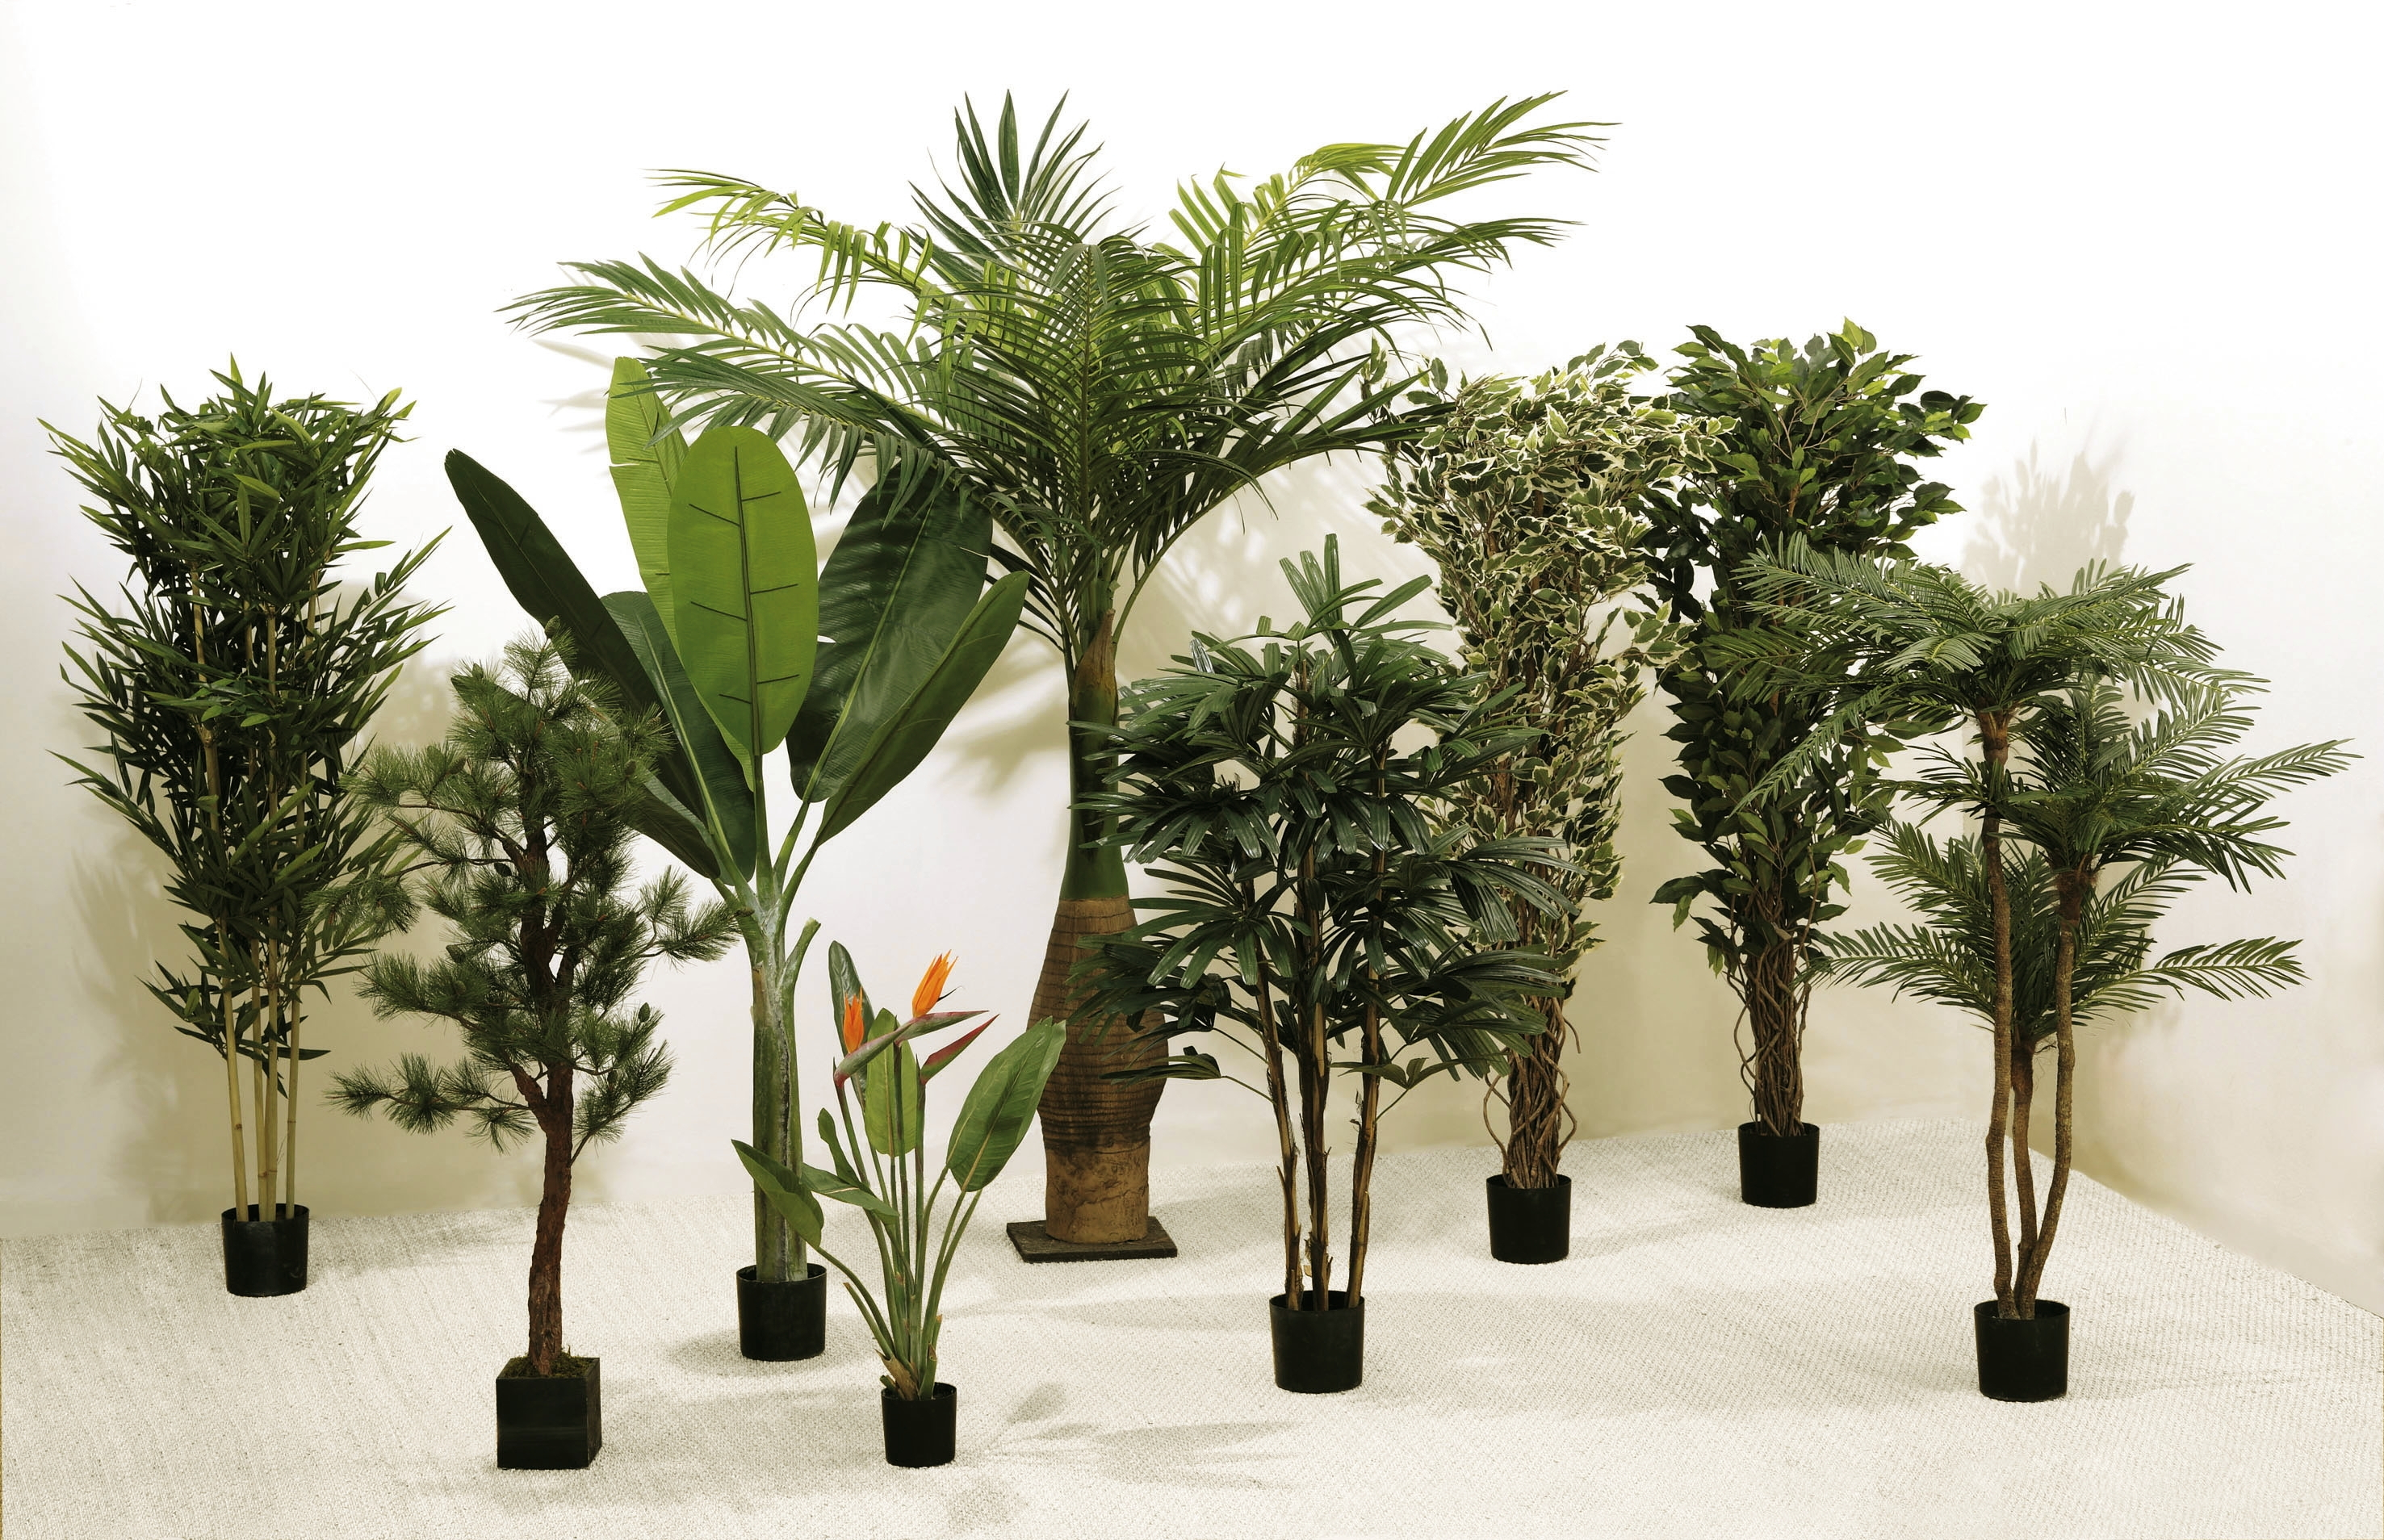 Plantes vertes artificielles remc homes for Plantes vertes